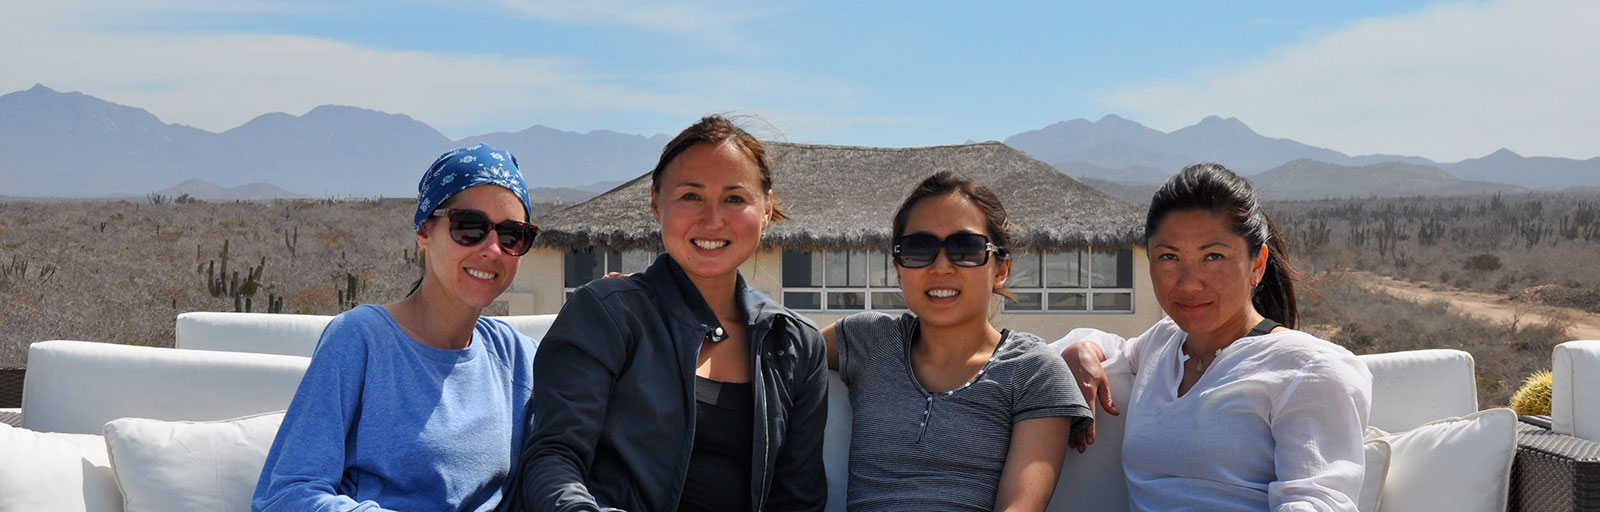 Mexico Yoga Retreat Reviews: Bonds of Friendship